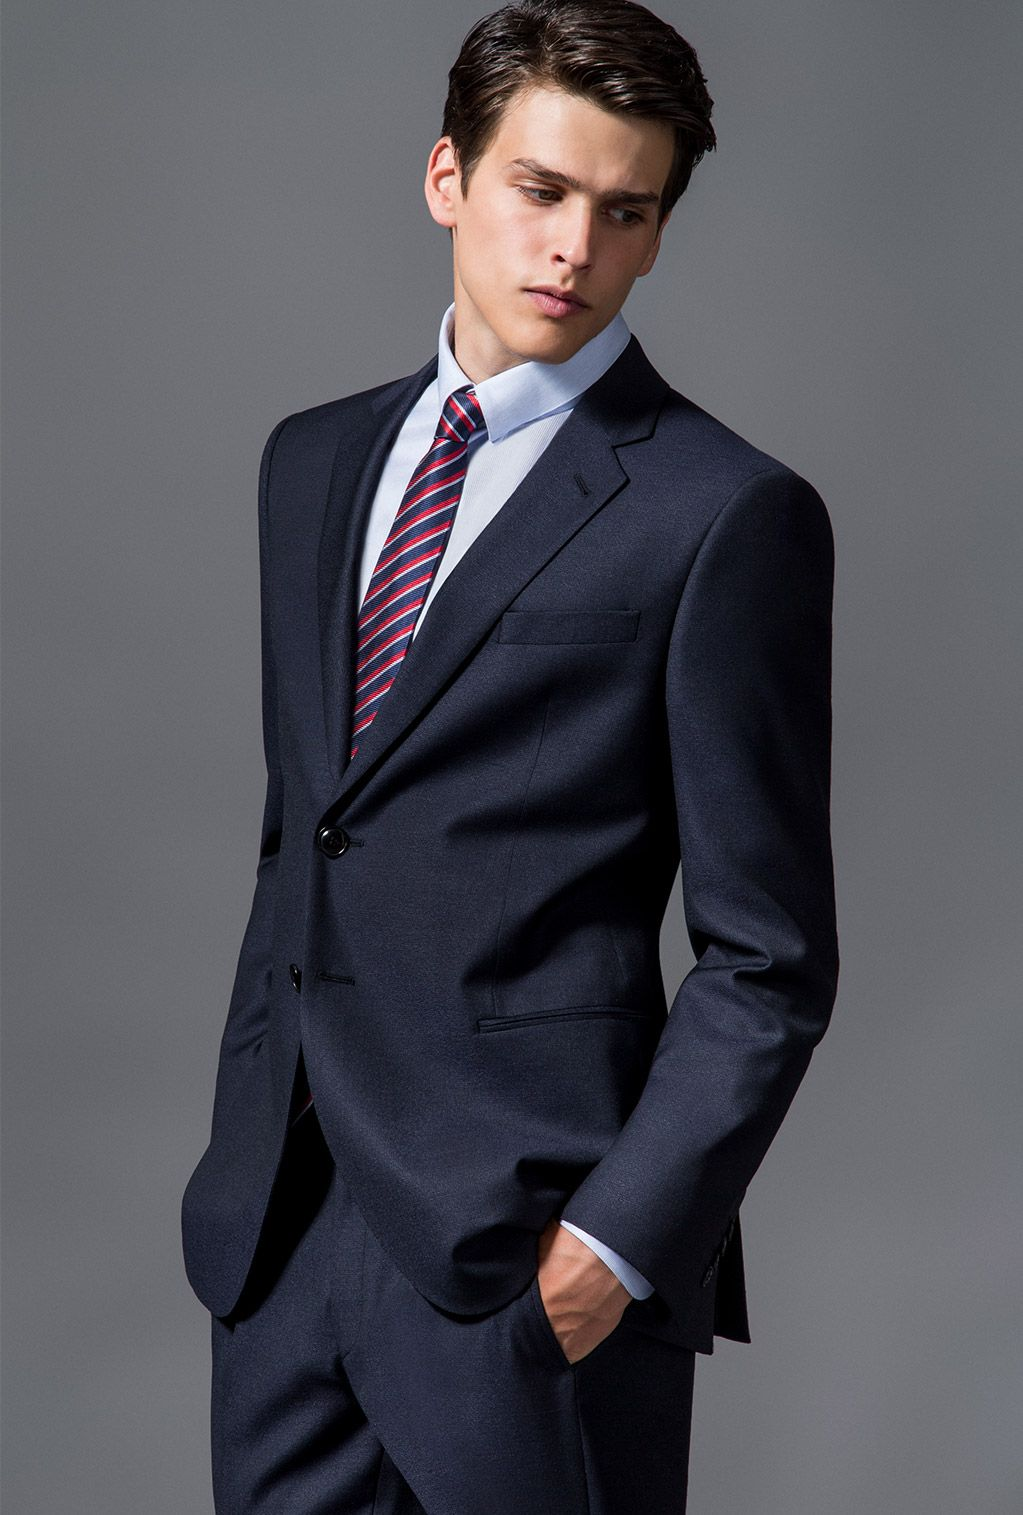 Black Armani Party wear suit with stripped tie